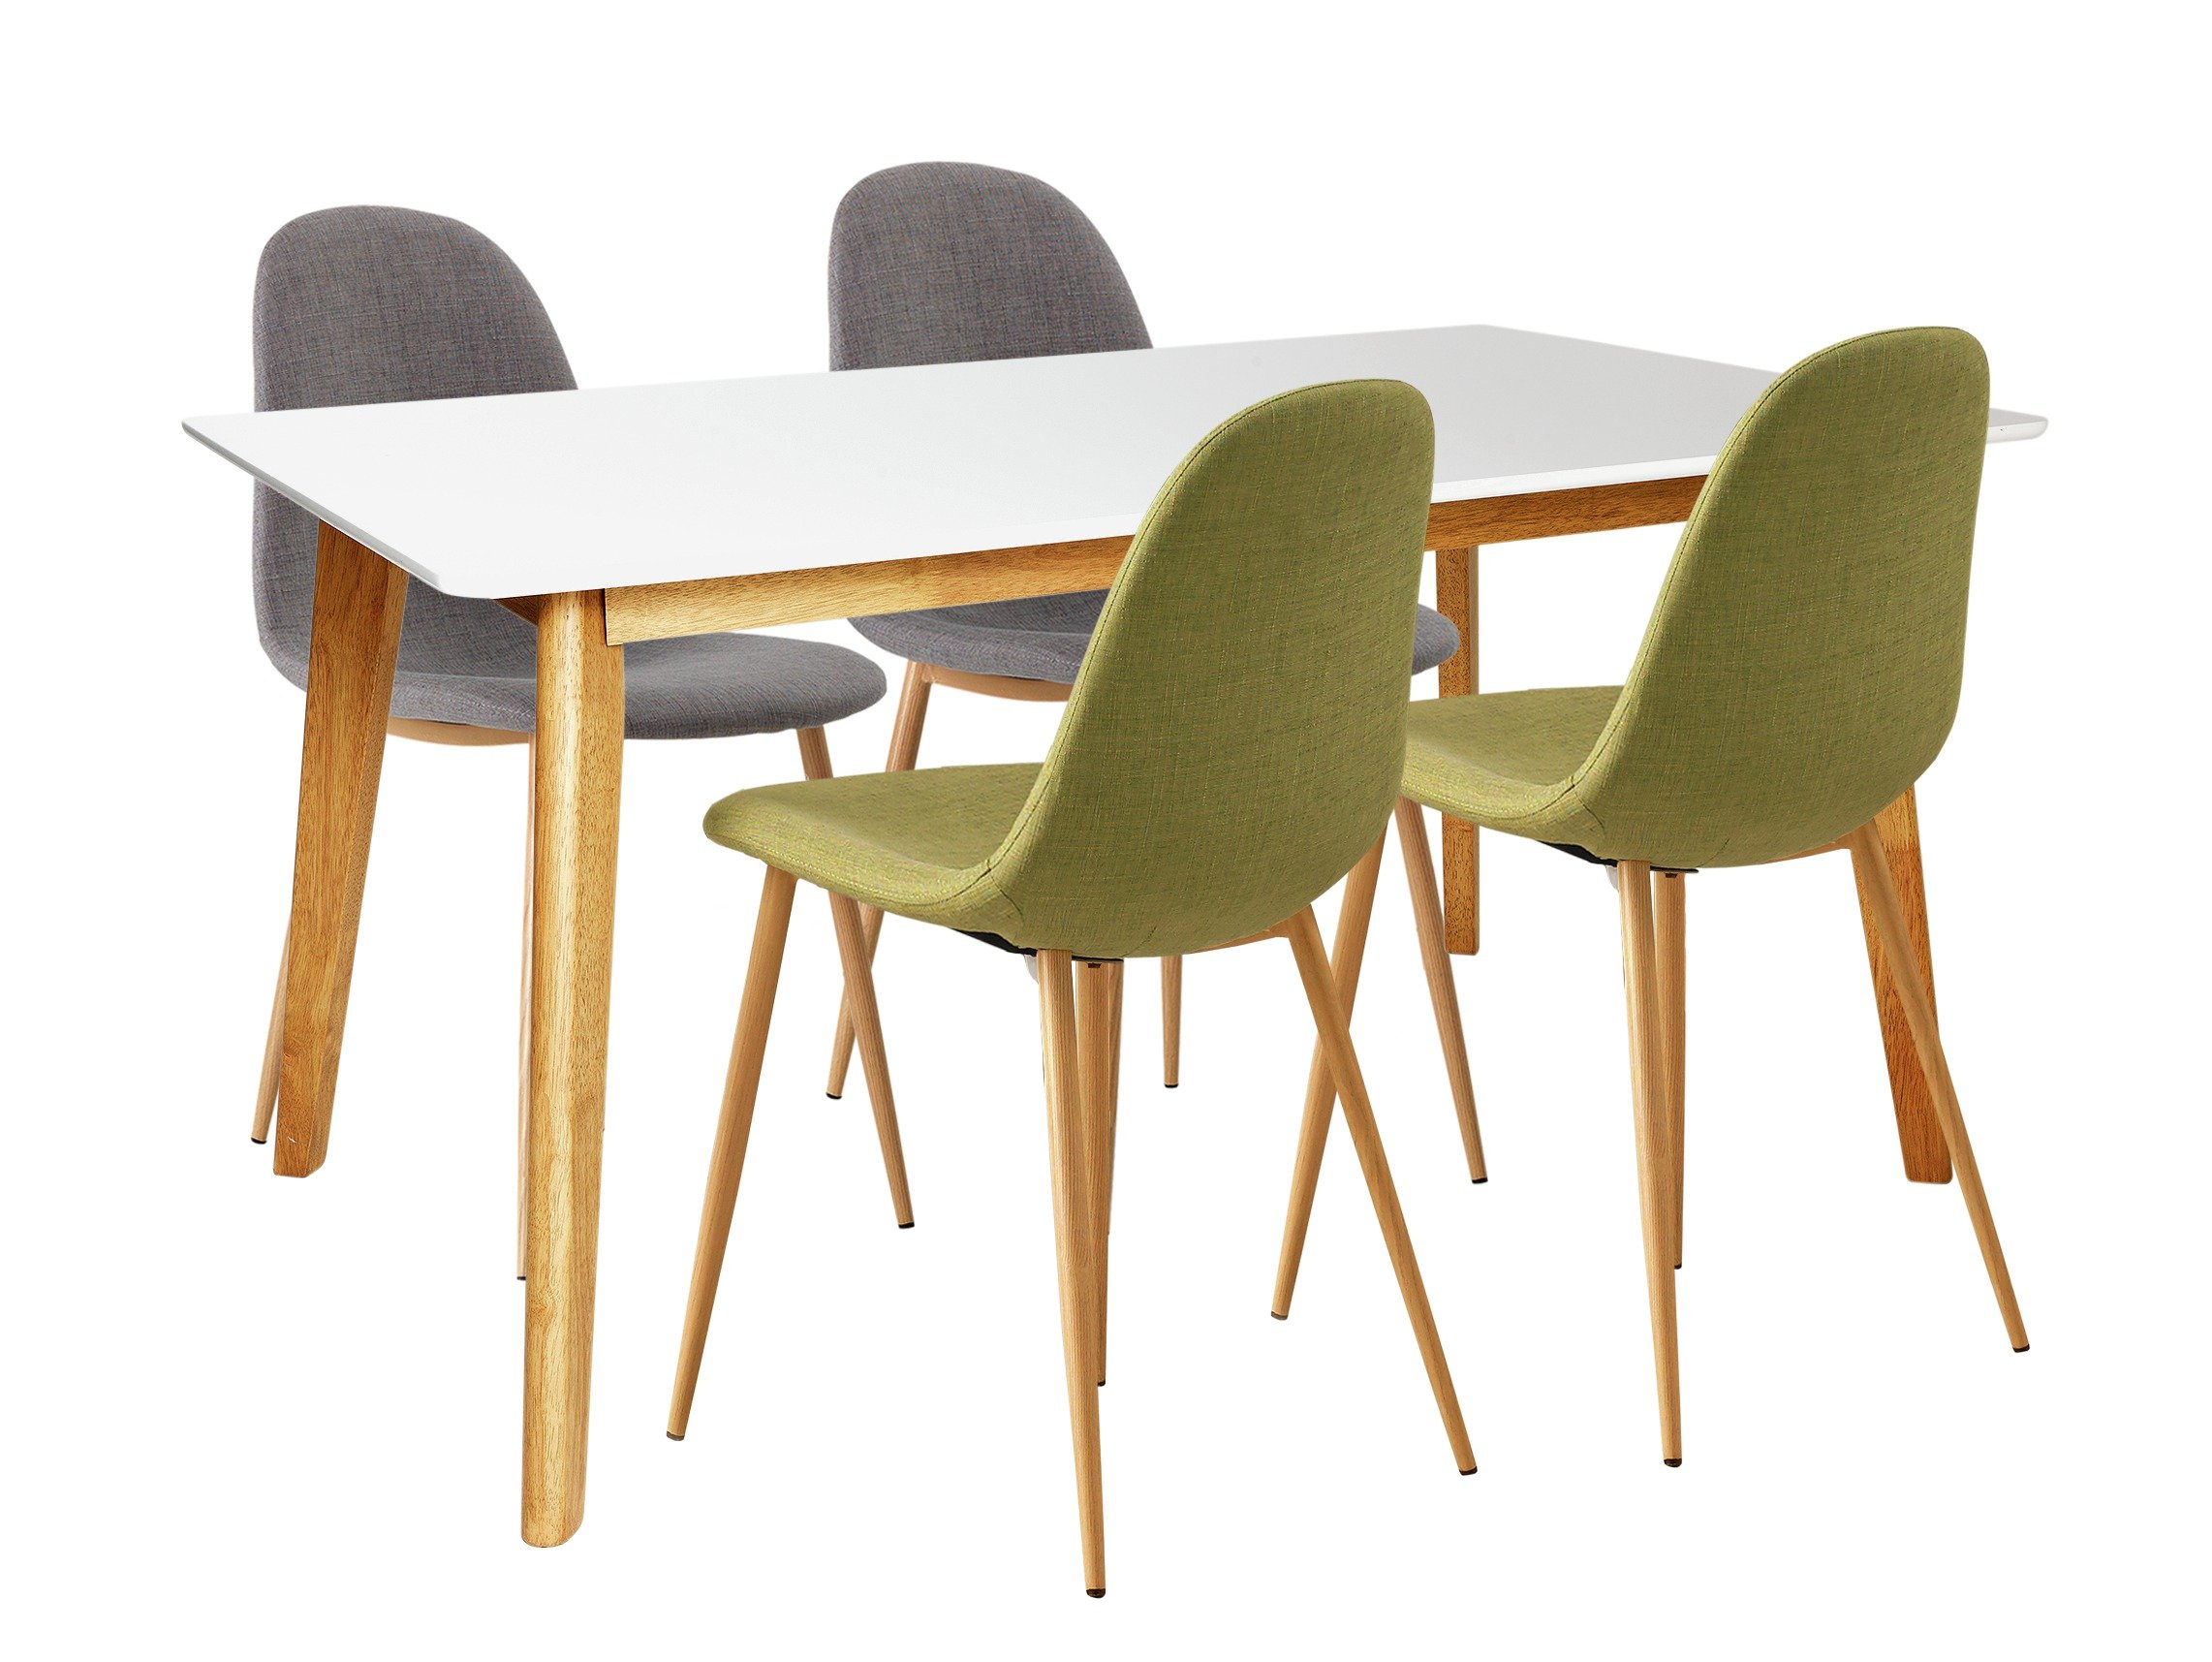 Buy Hygena Beni Dining Table and 4 Chairs GreenGrey at  : 5063877RZ001AWebampw570amph513 from www.argos.co.uk size 570 x 513 jpeg 25kB